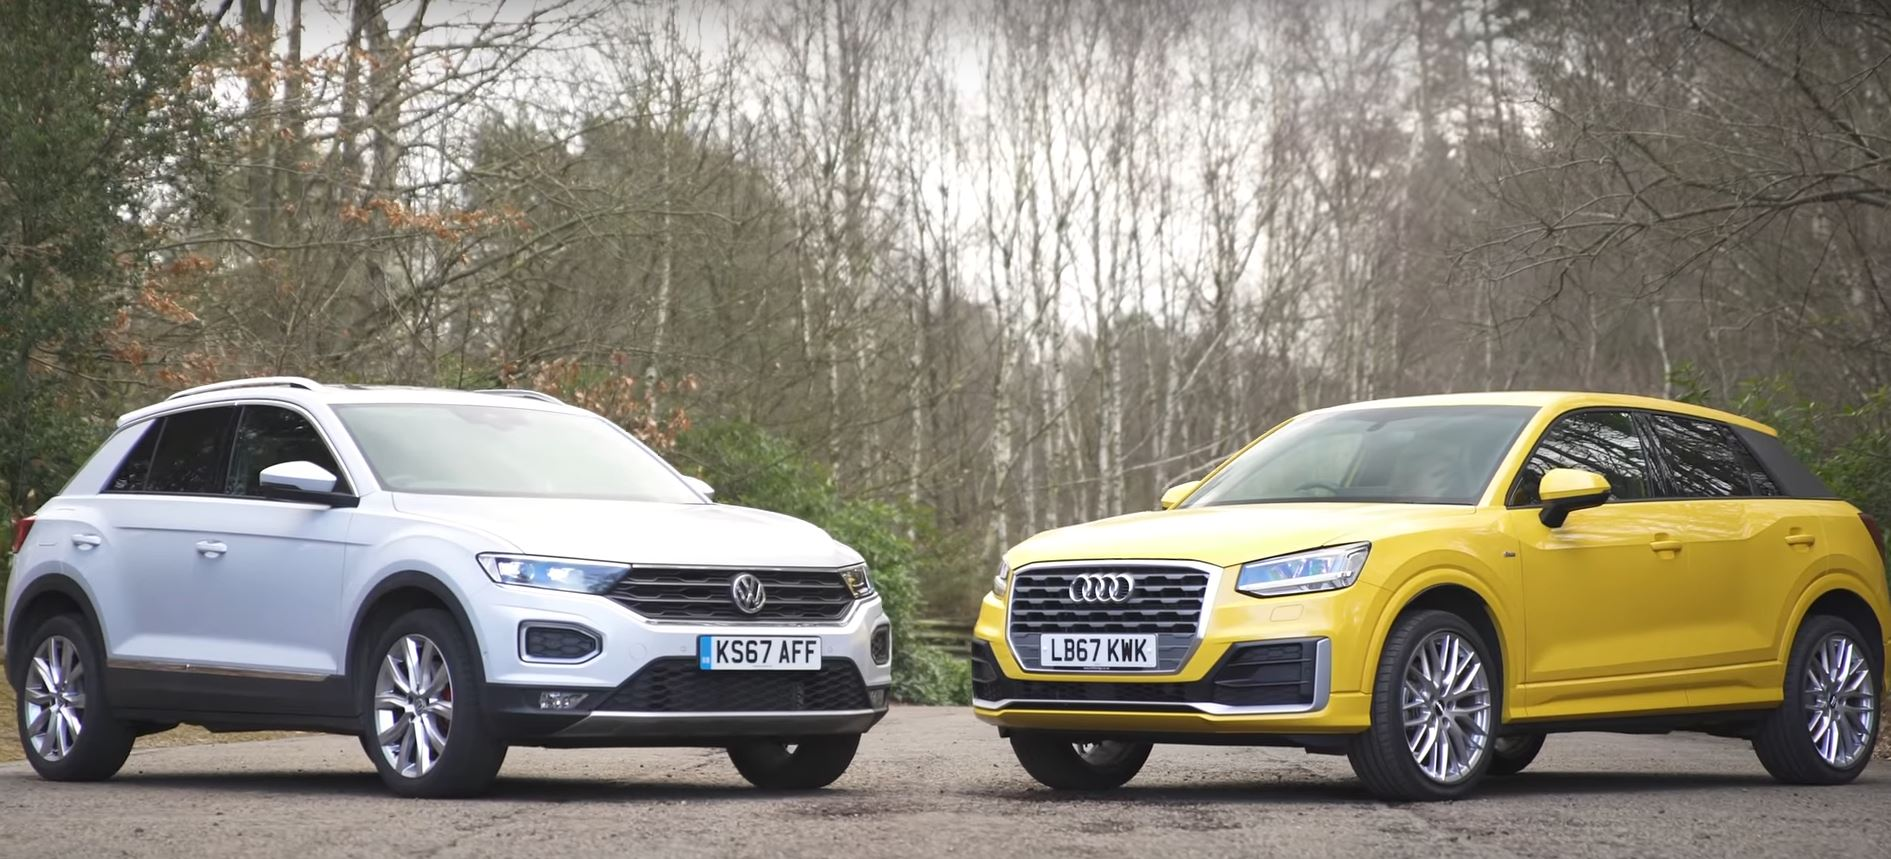 VW TRoc Vs Audi Q Which Is The Nicest Small German SUV - Is audi made by vw